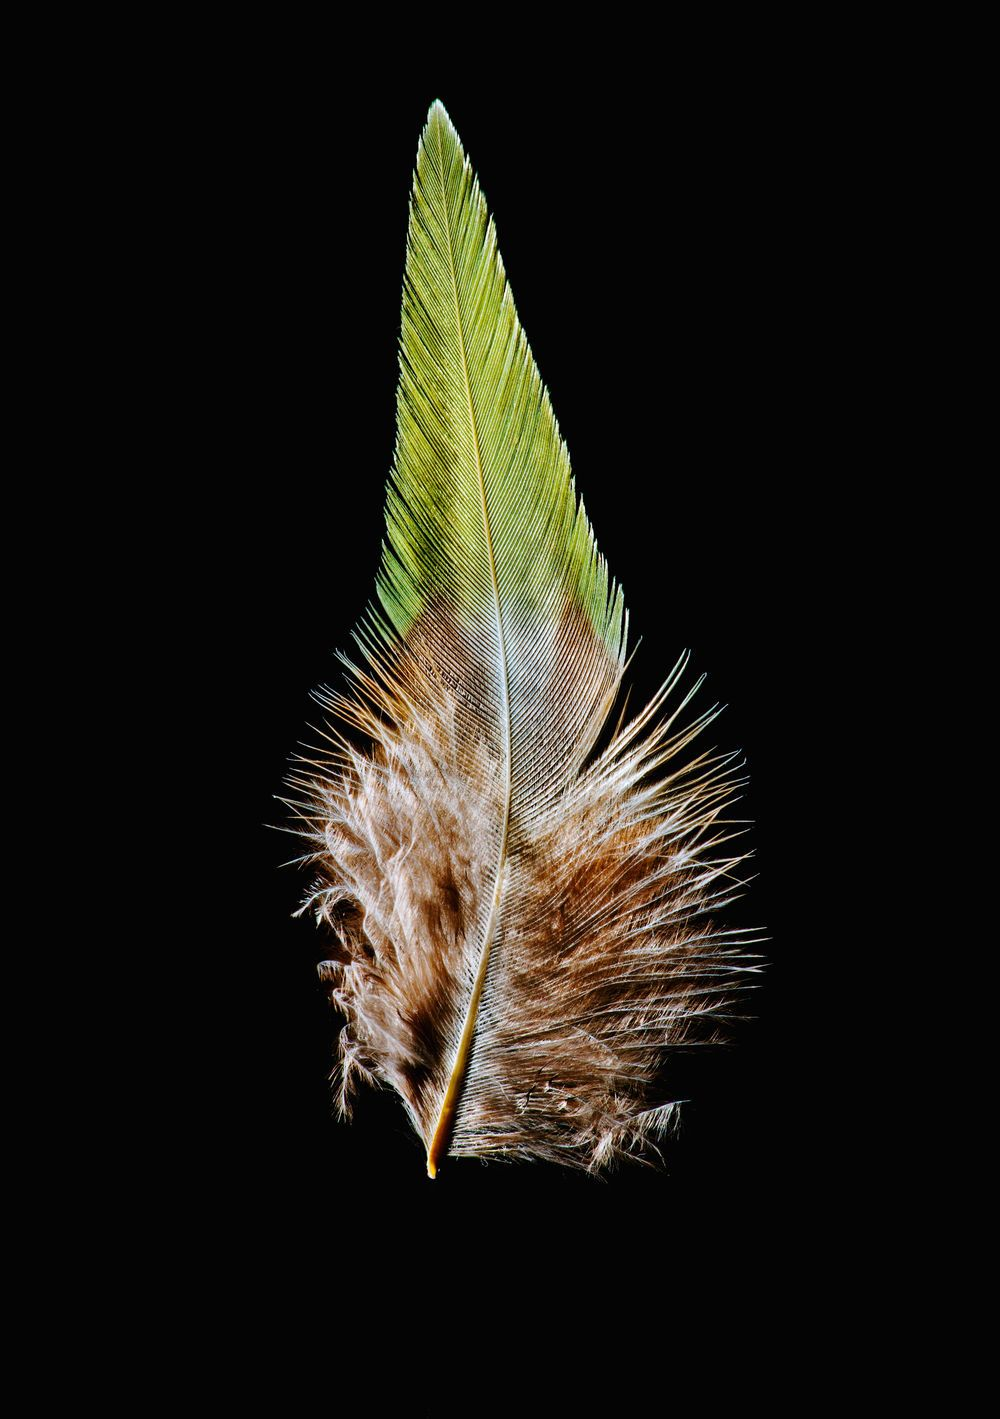 The blood pheasant's feather is a lovely green